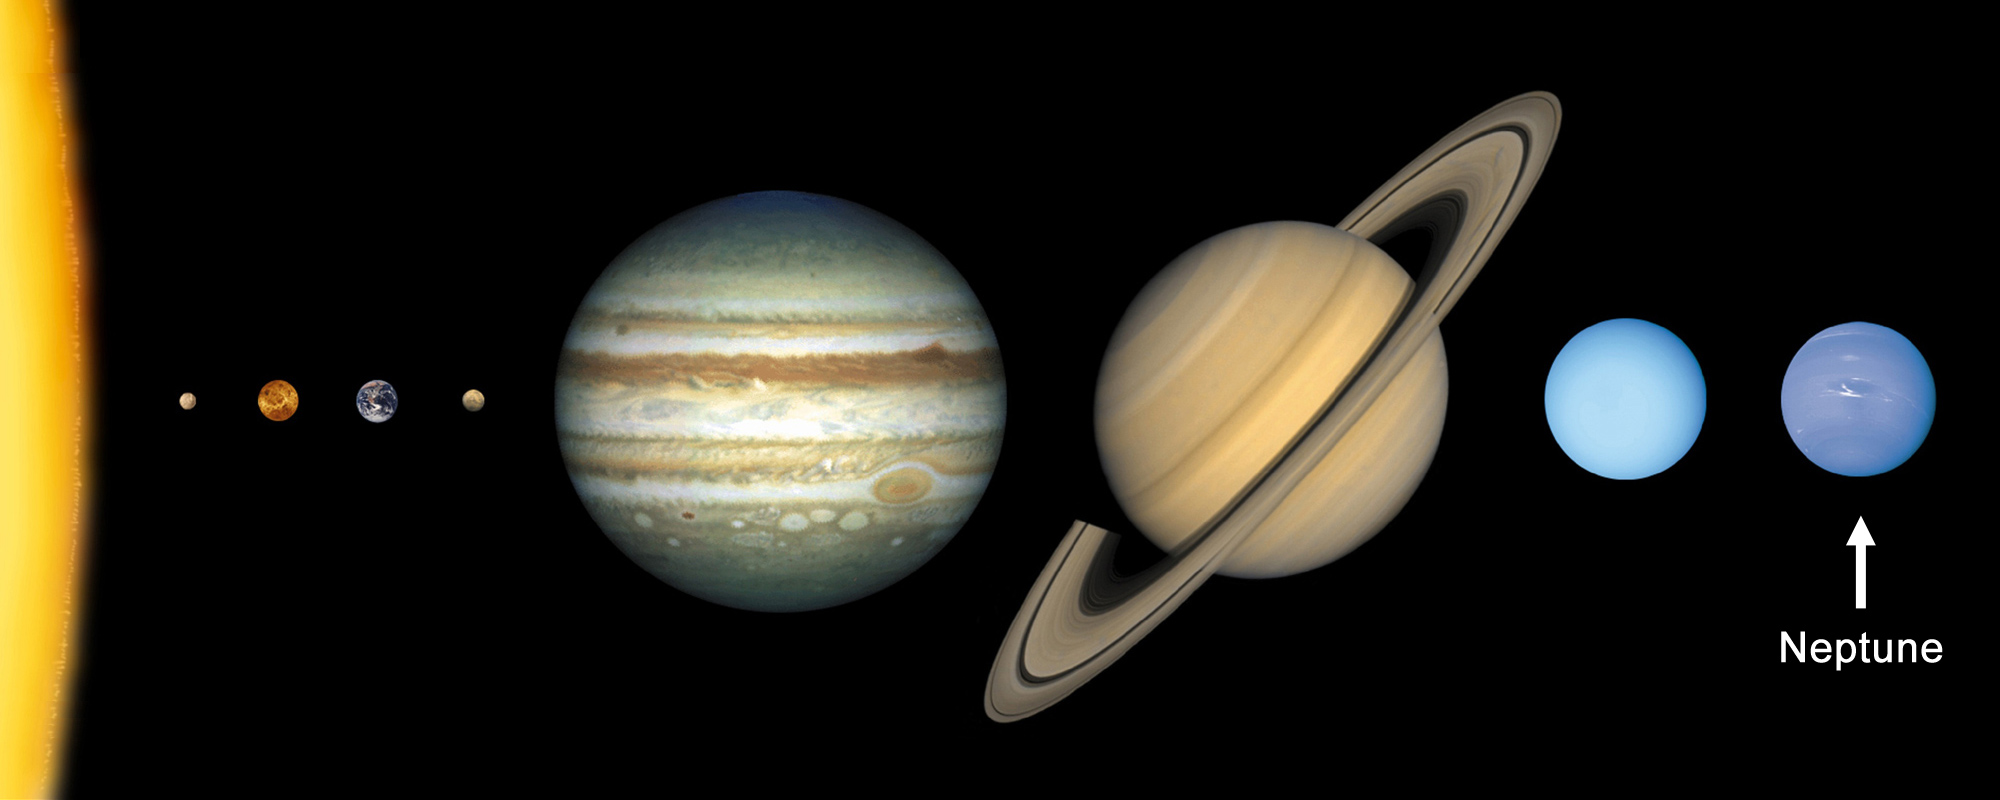 placement of planets - photo #32